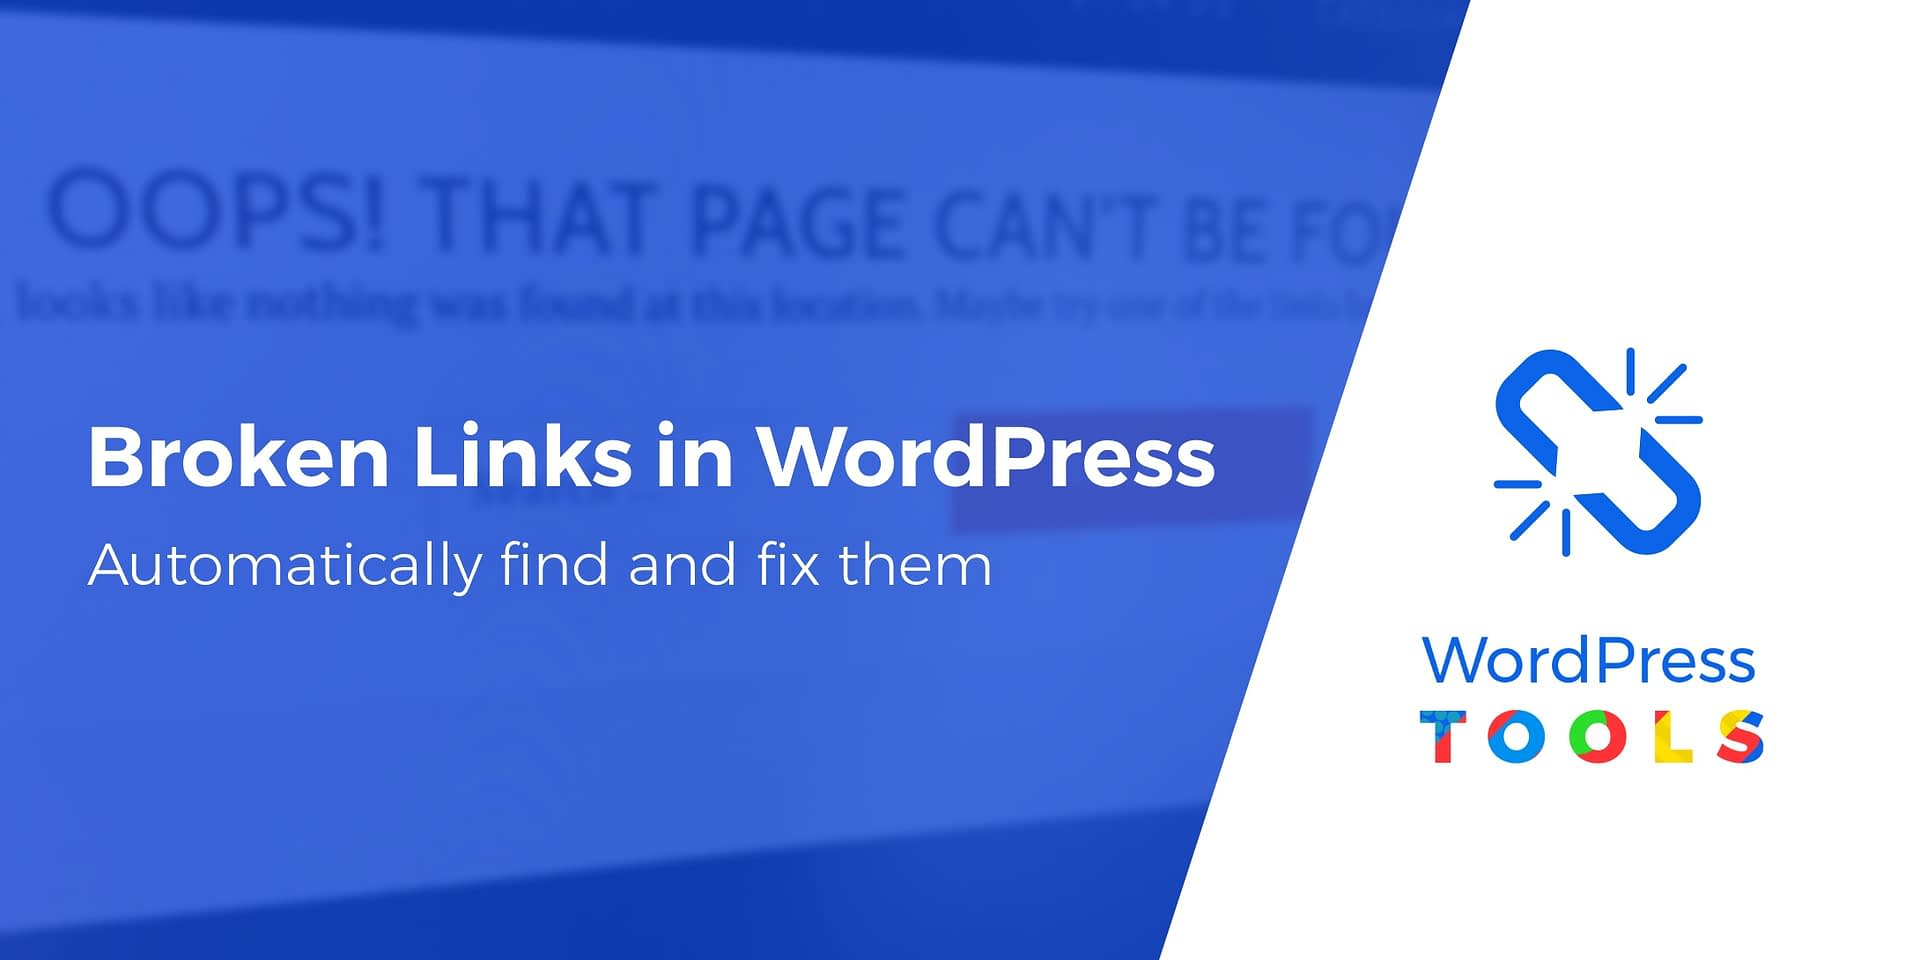 How to Automatically Find and Fix Broken Links in WordPress